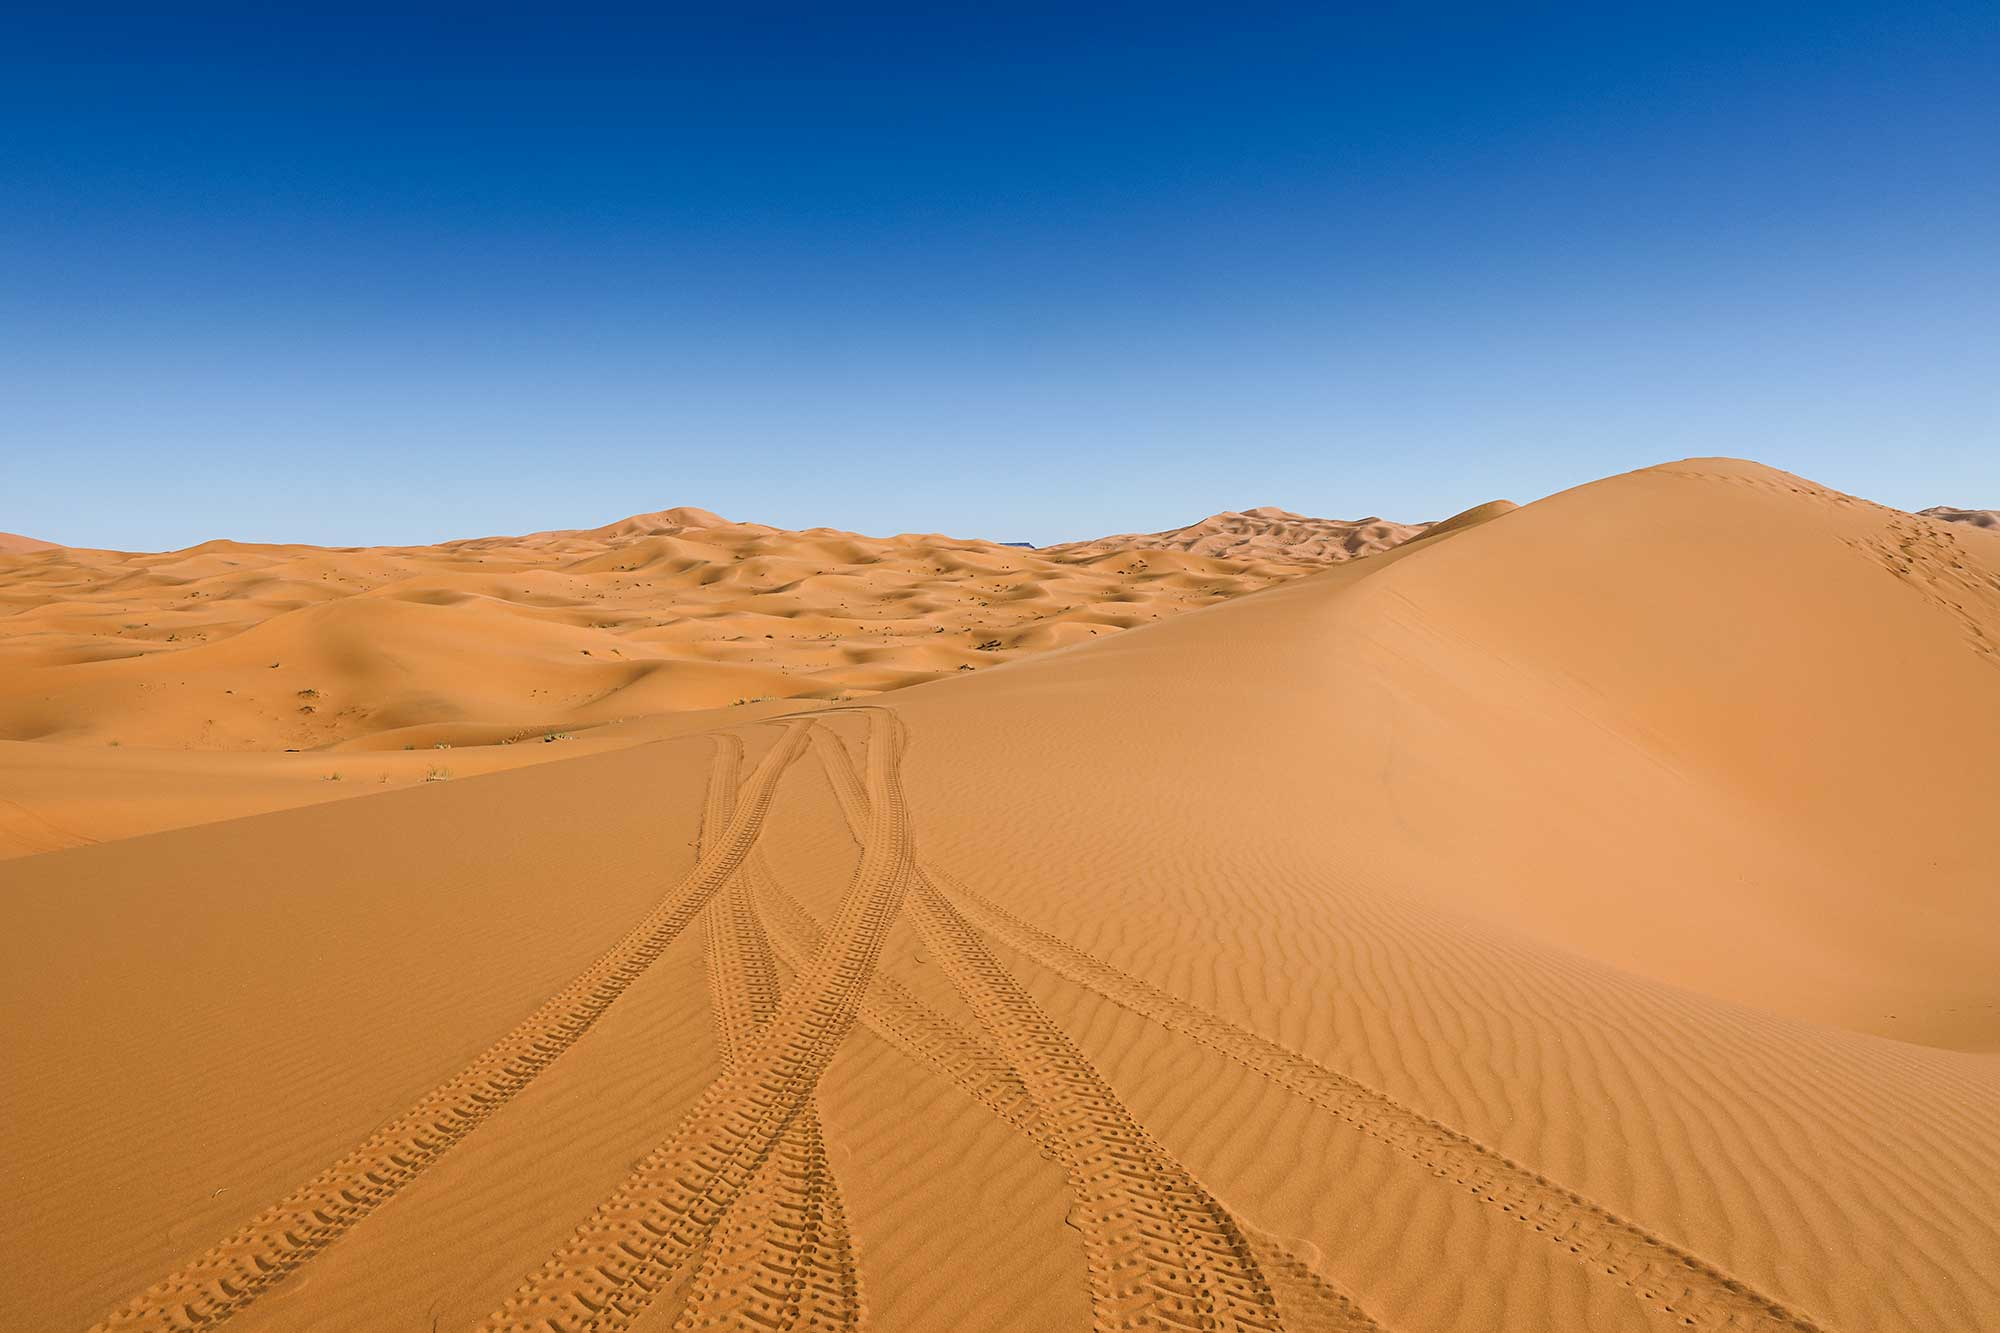 The dunes of Erg Chebbi reach a height of up to 150 meters in places and altogether it spans an area of 50 kilometers from north to south and up to 5–10 kilometers from east to west. © ULLI MAIER & NISA MAIER